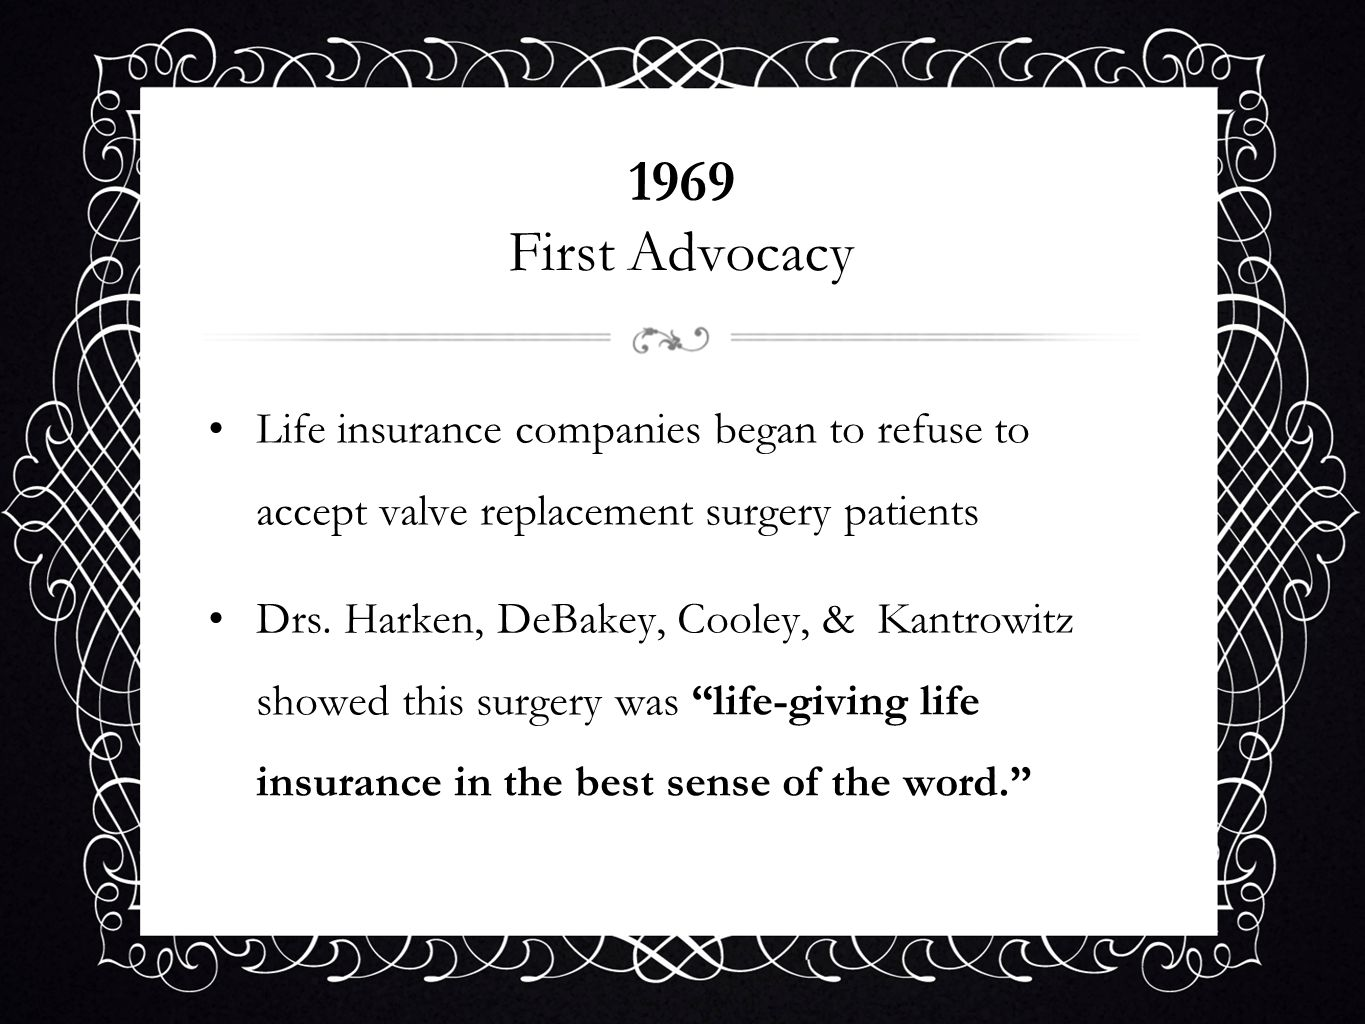 1969 First Advocacy Life insurance companies began to refuse to accept valve replacement surgery patients.